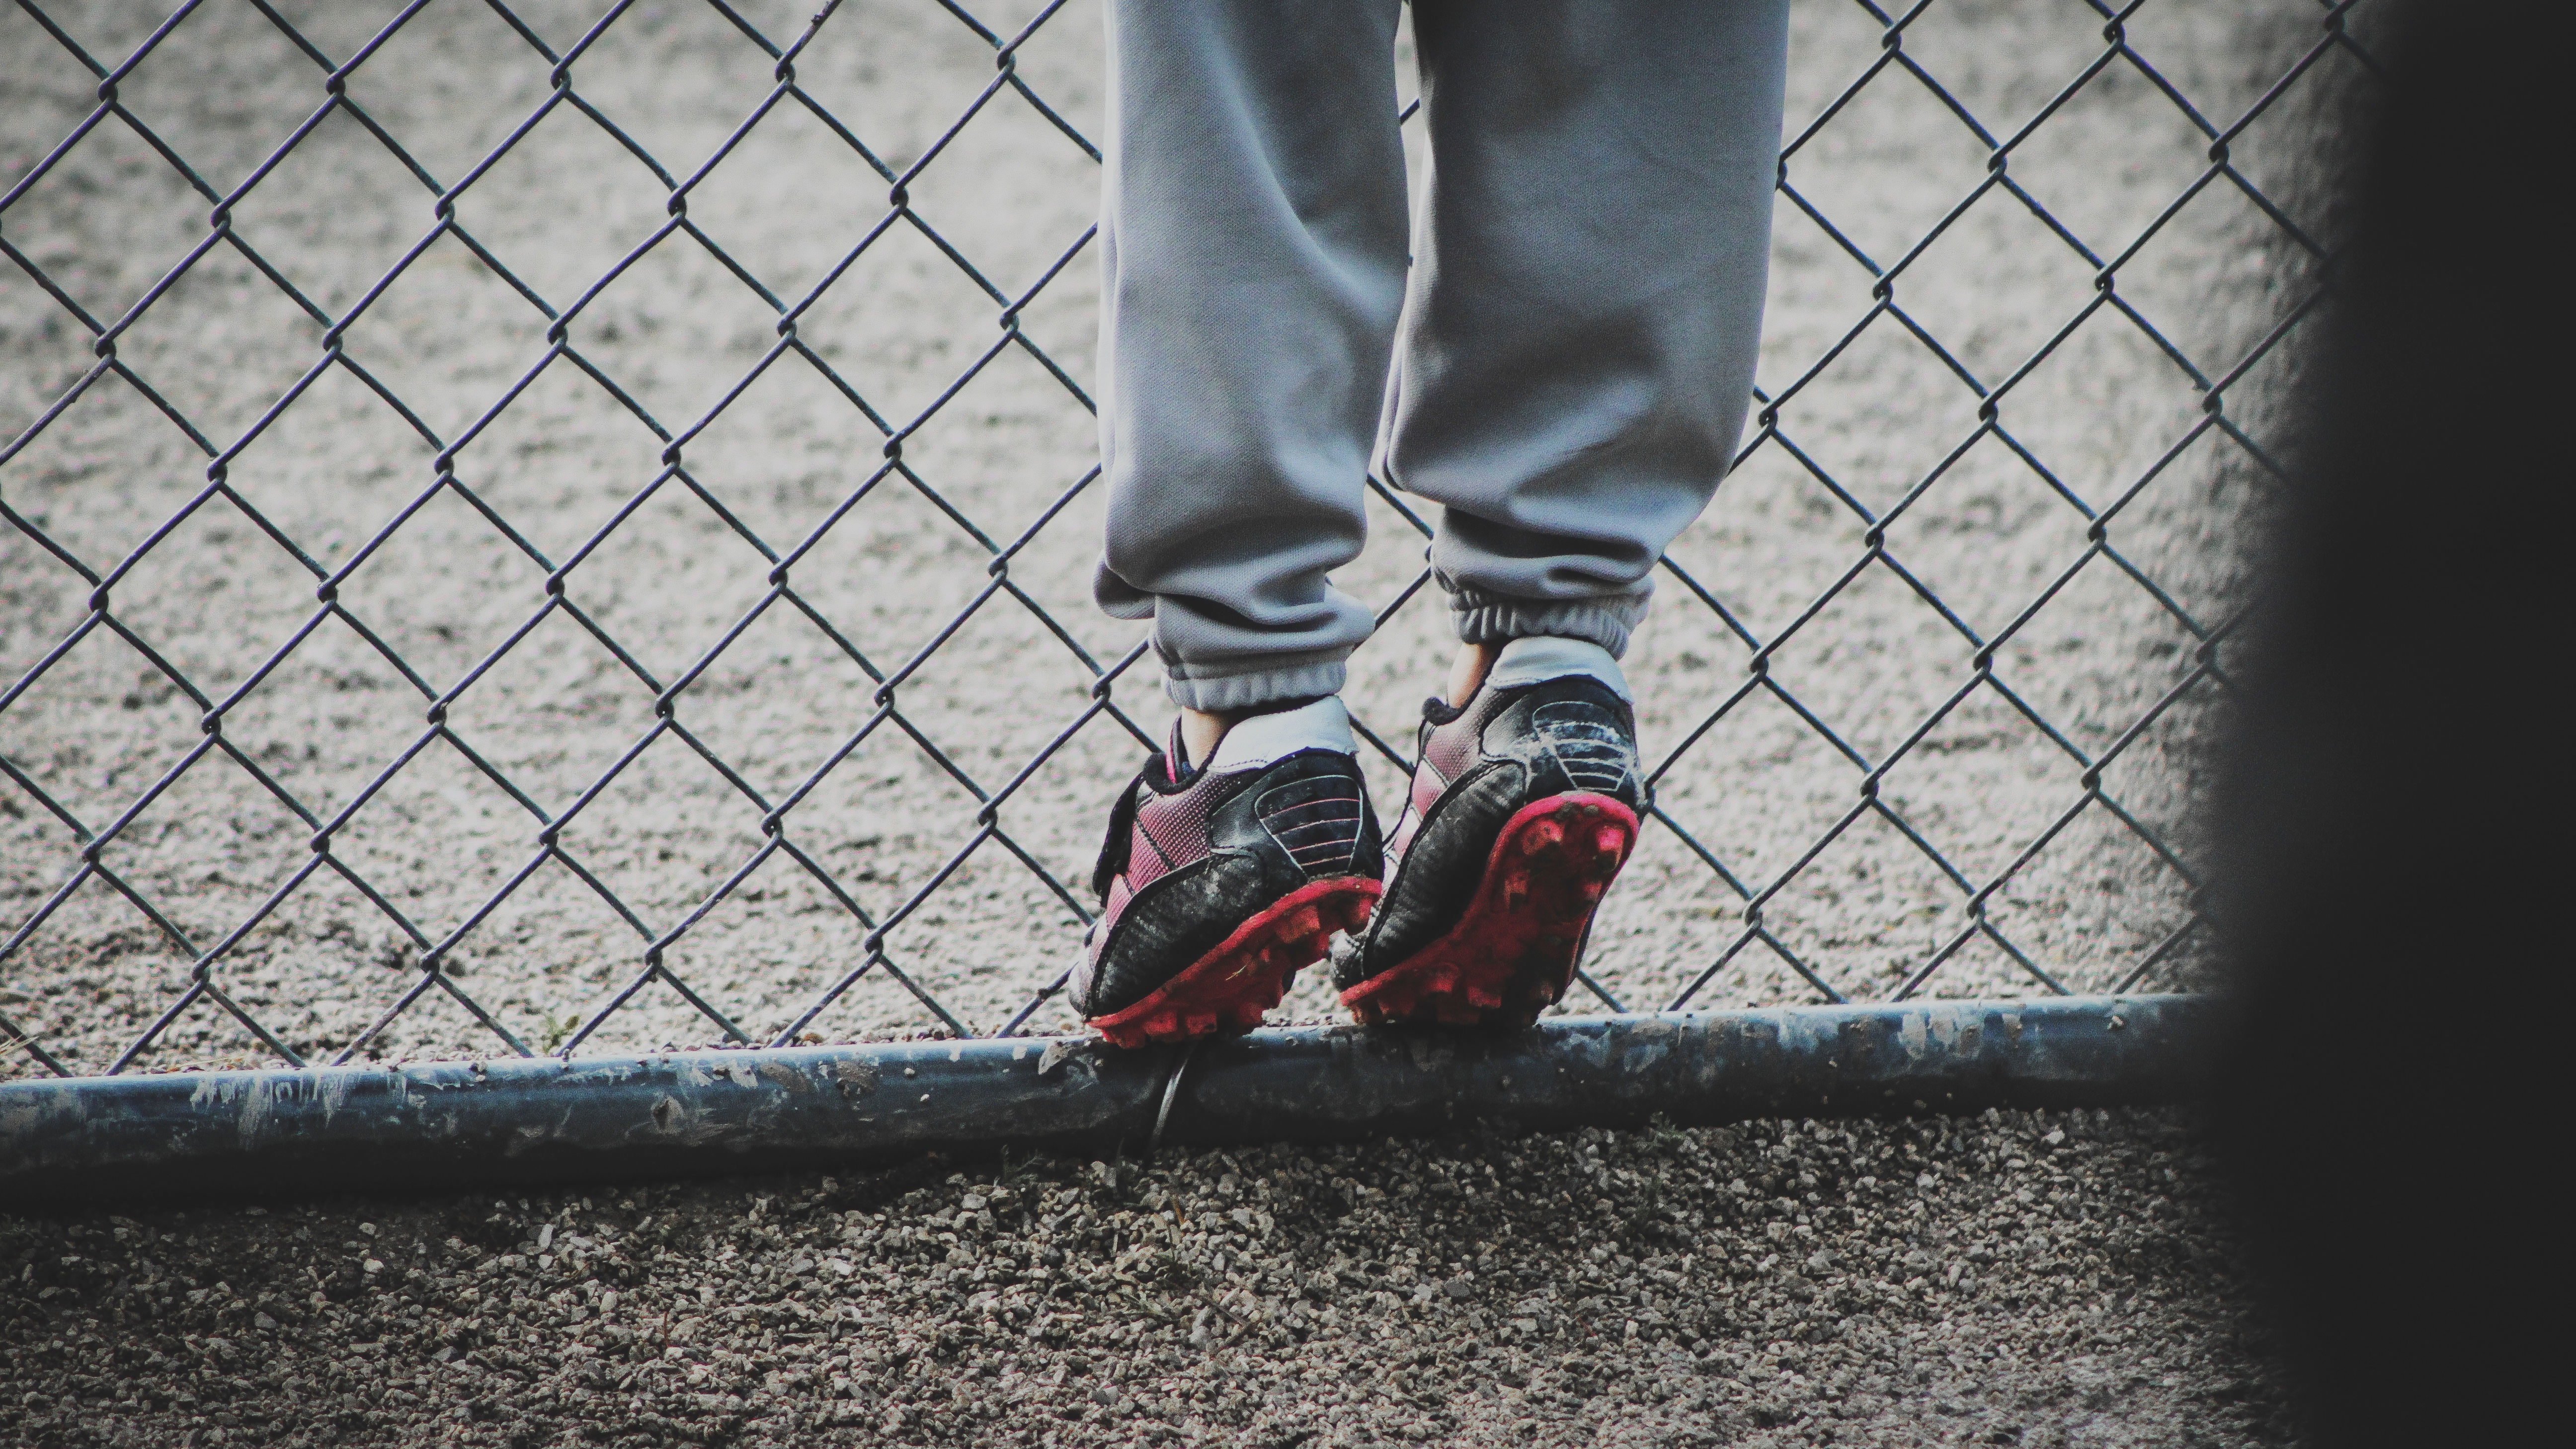 Boots Feet Child Football Fence Grid